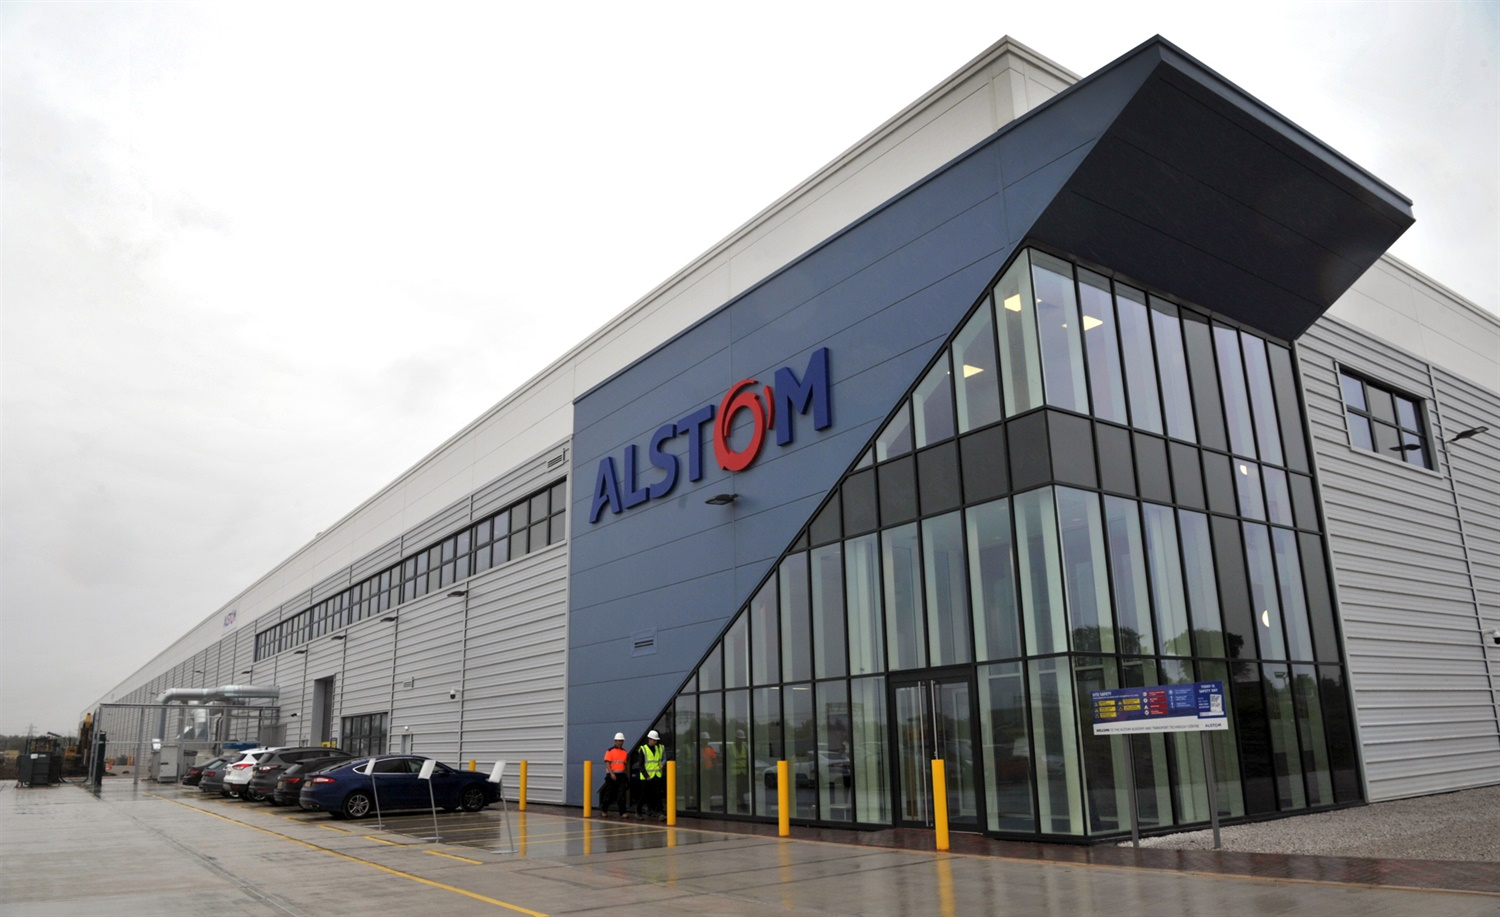 Alstom to close historic Preston rail site